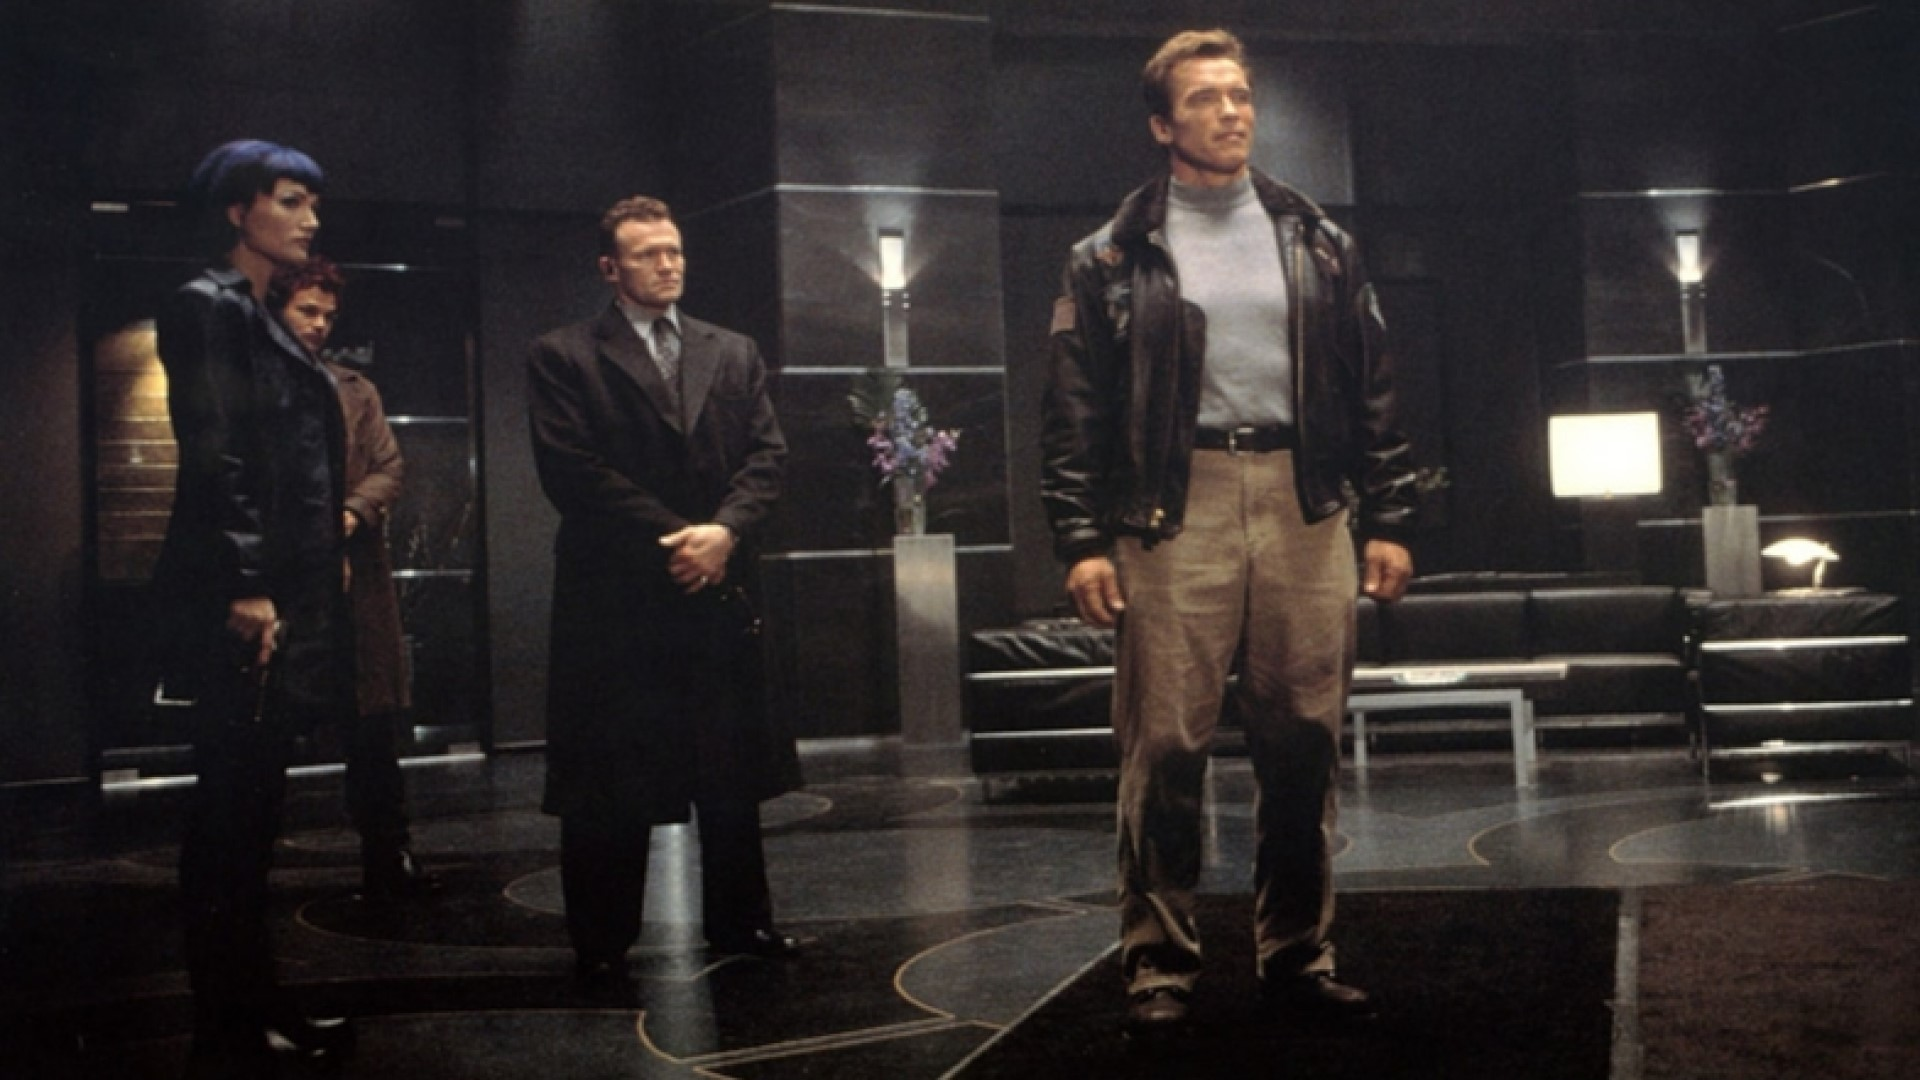 THE 6TH DAY (2000) - Adam Gibson's (Arnold Schwarzenegger) Leather Jacket - Image 15 of 15